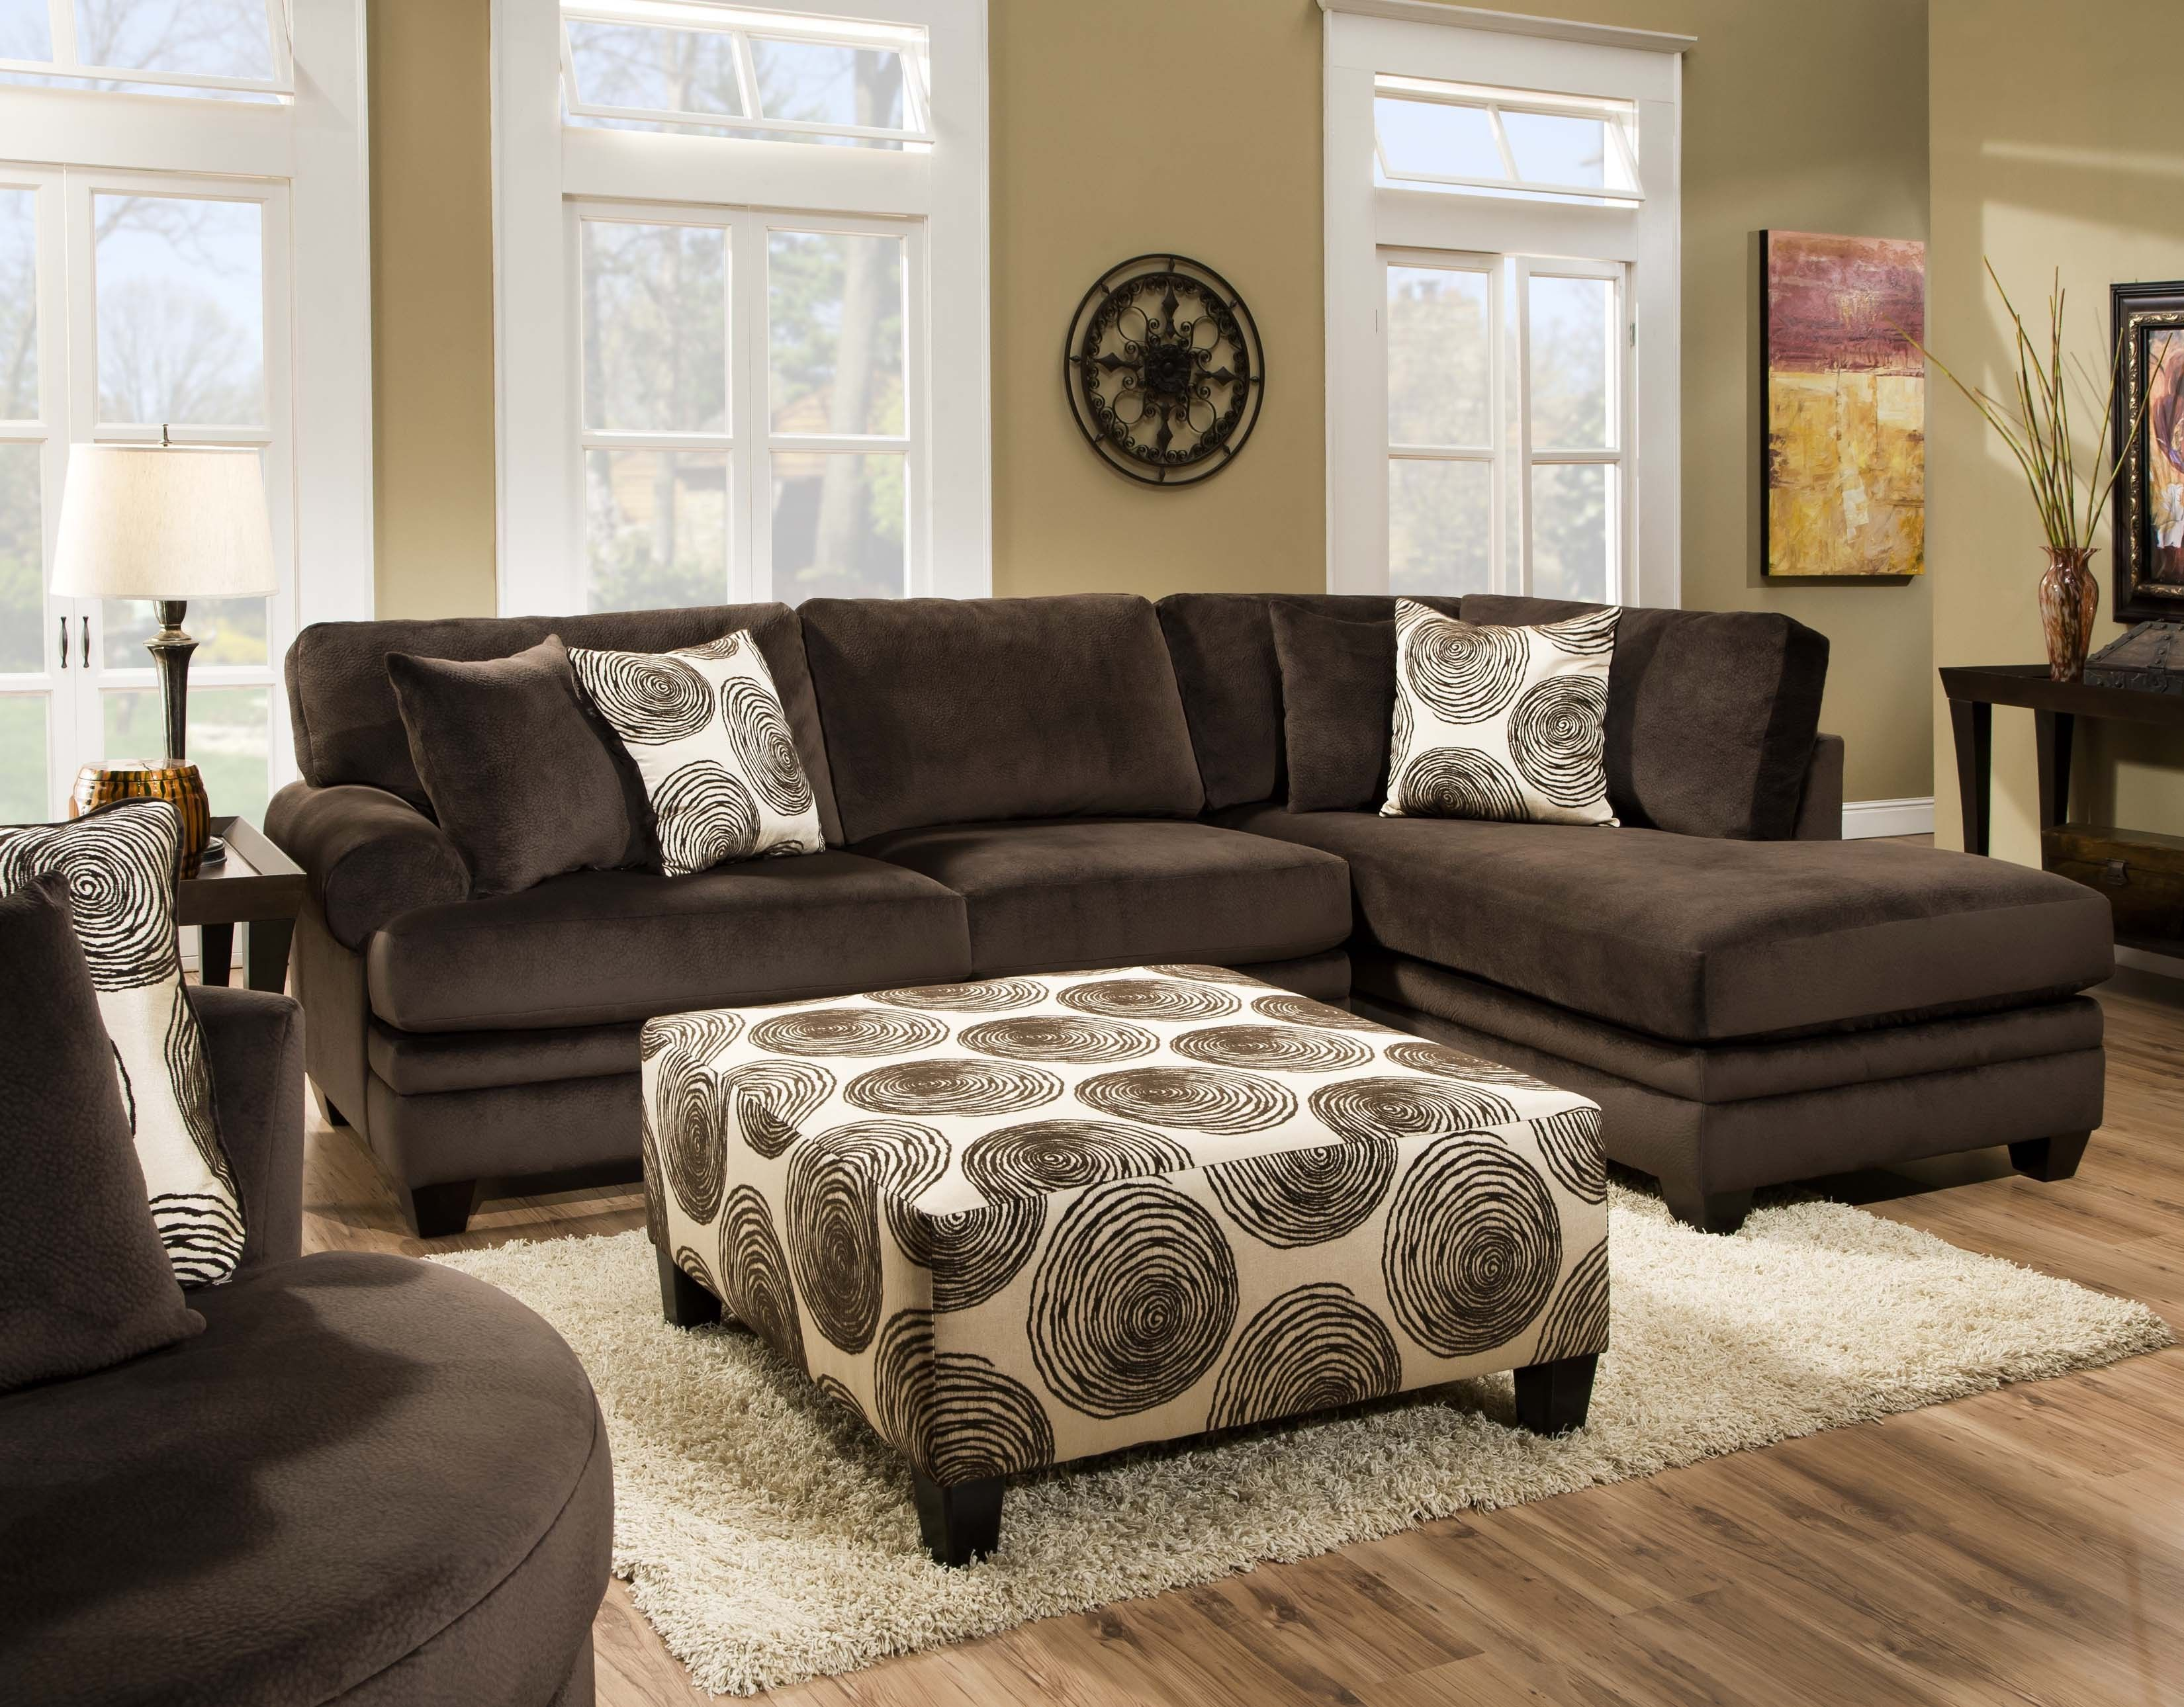 Living Room Paint Color Ideas With Brown Furniture Leather Couches Colour Palettes